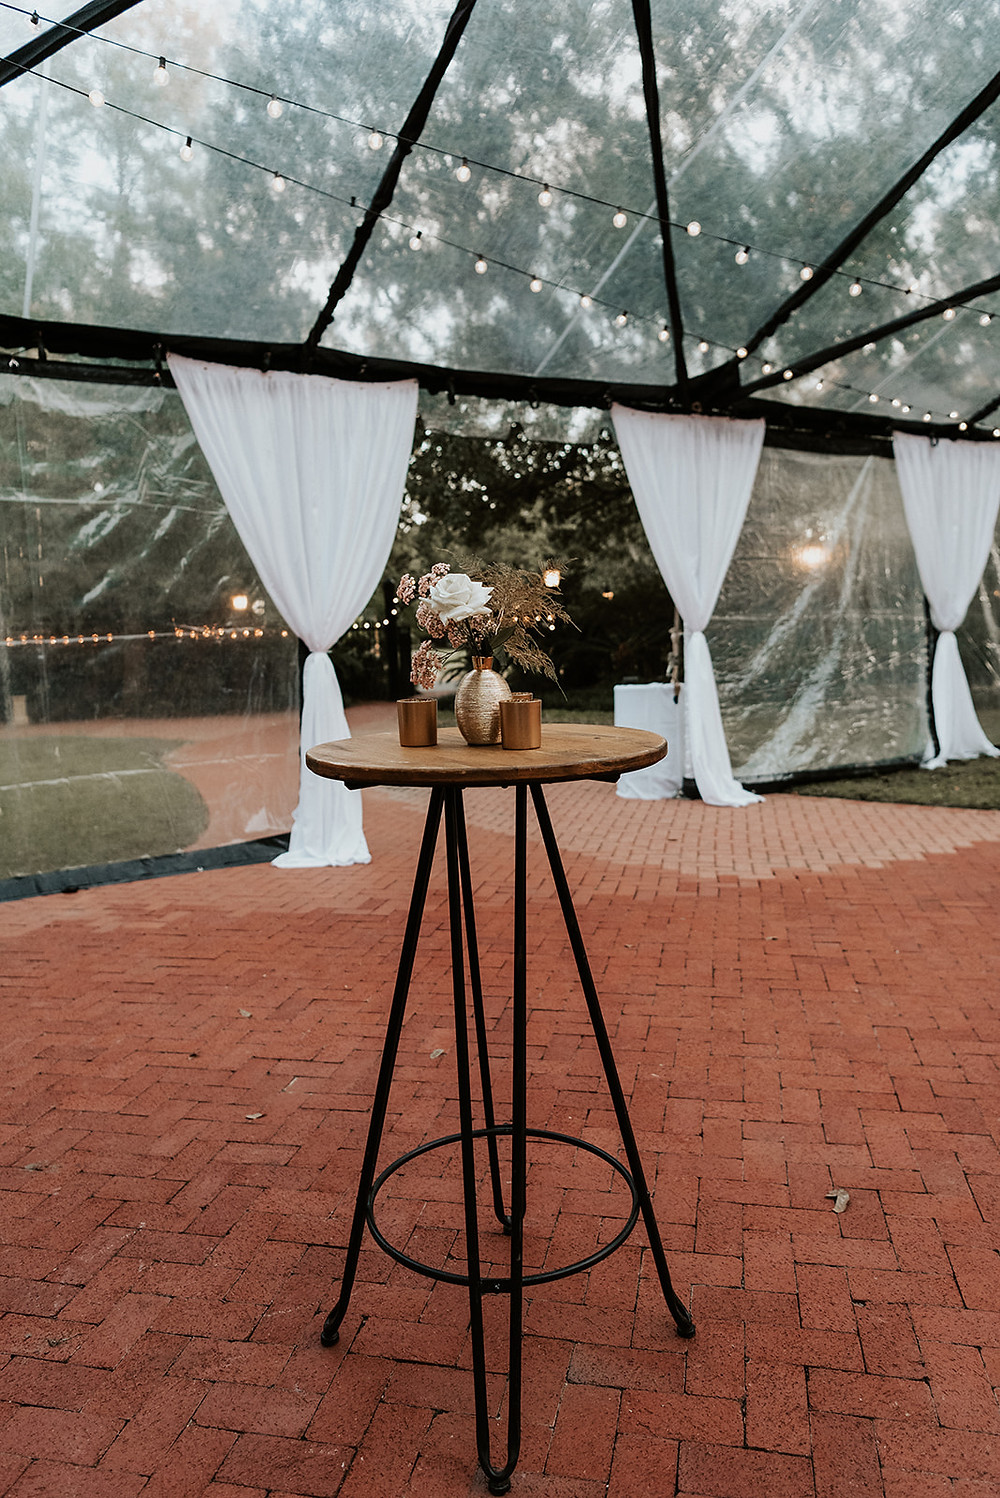 New Orleans' Tree of Life and Audubon Tea Room Wedding with Lovegood Wedding & Event Rentals with Pink Chuppah, Babybreath Floral Boa, and Many More Details  | Lovegood Wedding & Event Rentals, New Orleans Vintage Rental Company for Corporate, Parties, and Weddings | Lounge Furniture in NOLA, Specialty Rentals, Decor across the Southeast, fashion forward bride and groom with cocktail hour